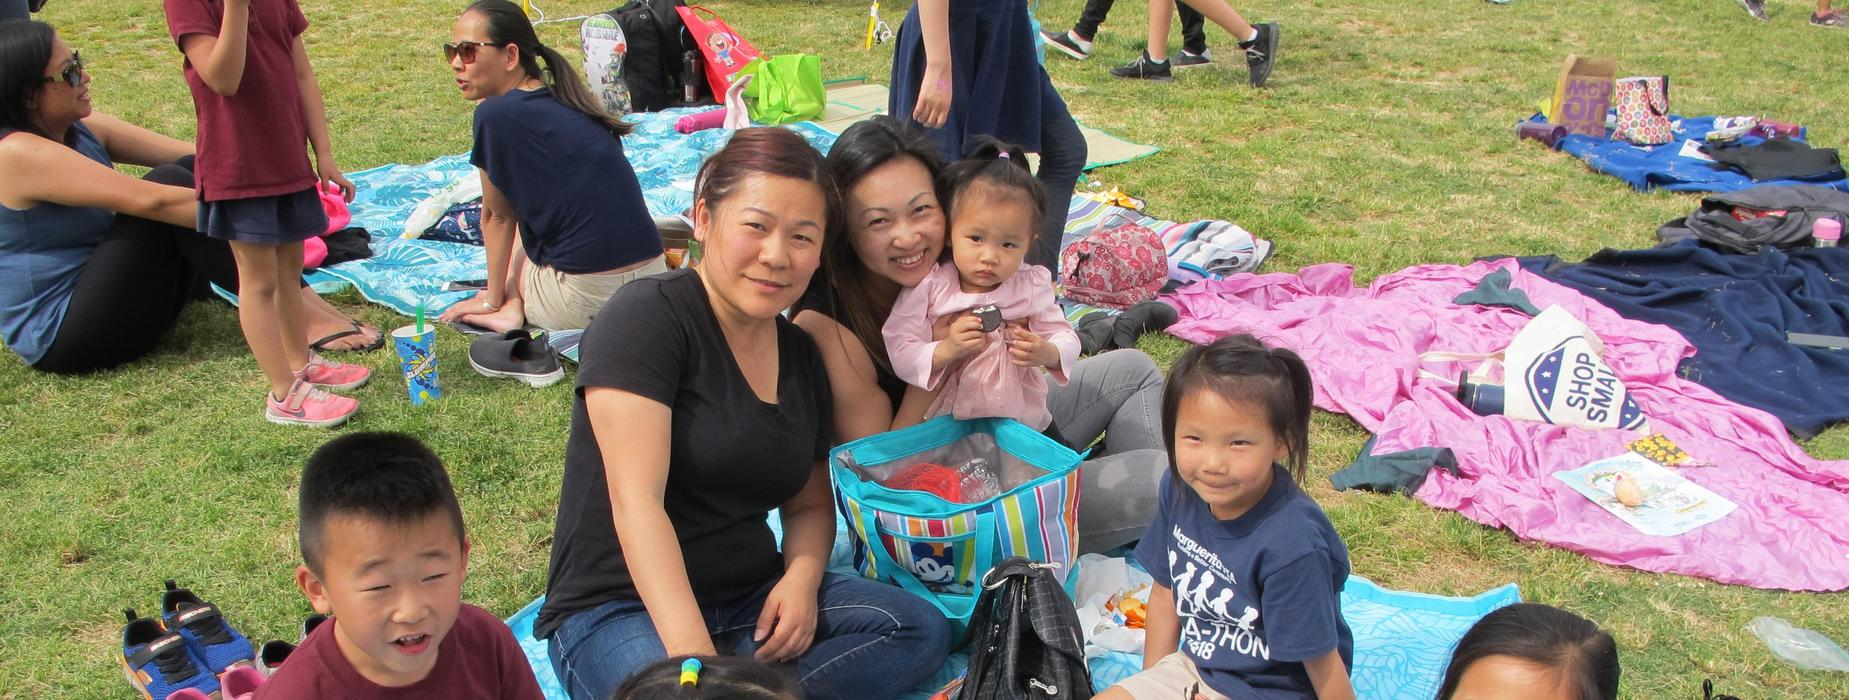 Marguerita students and family during picnic